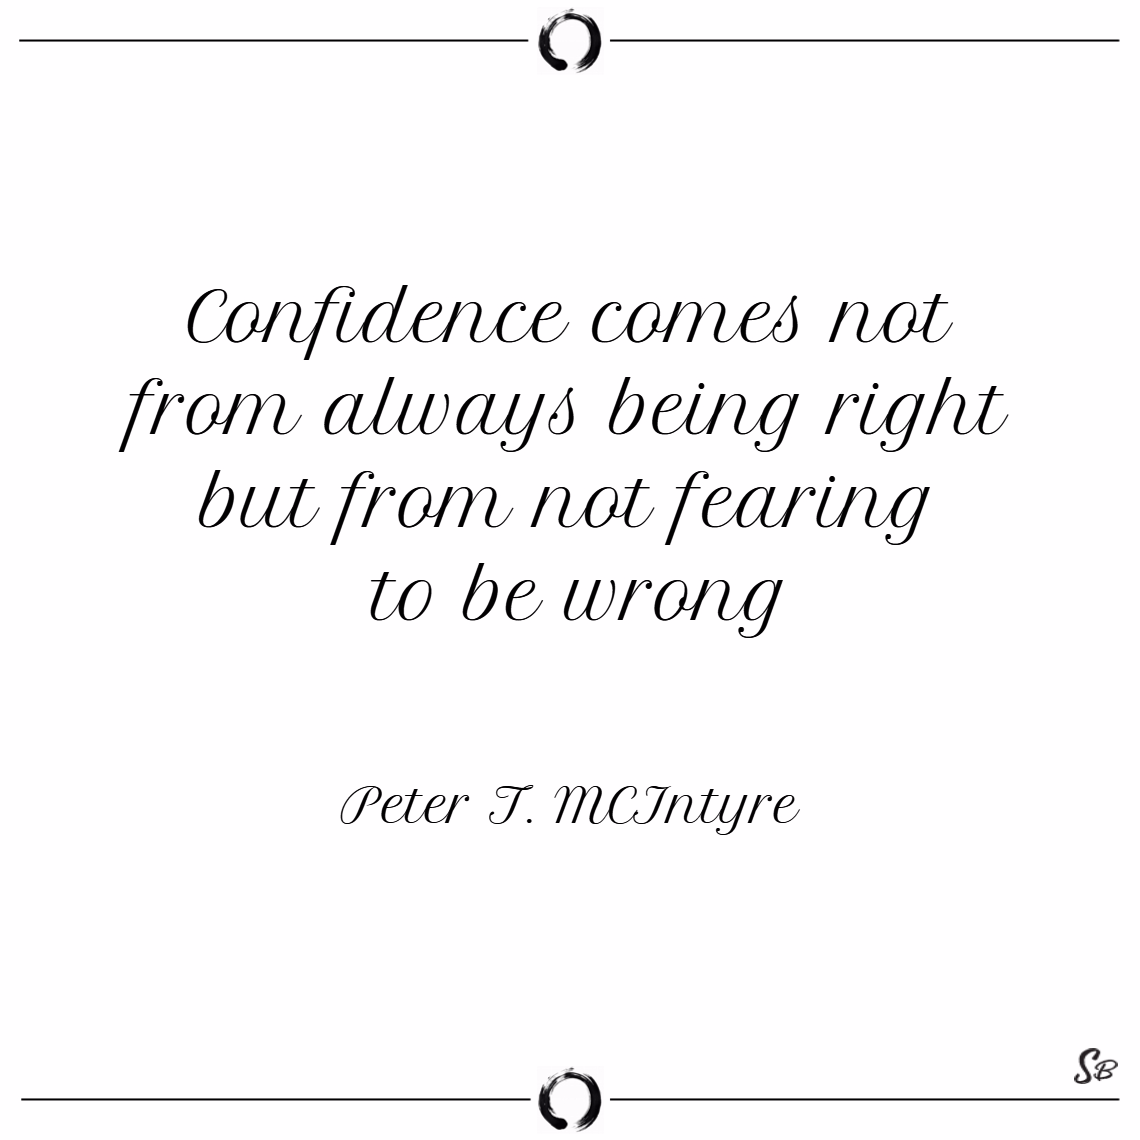 Confidence comes not from always being right but from not fearing to be wrong. – peter t. mcintyre